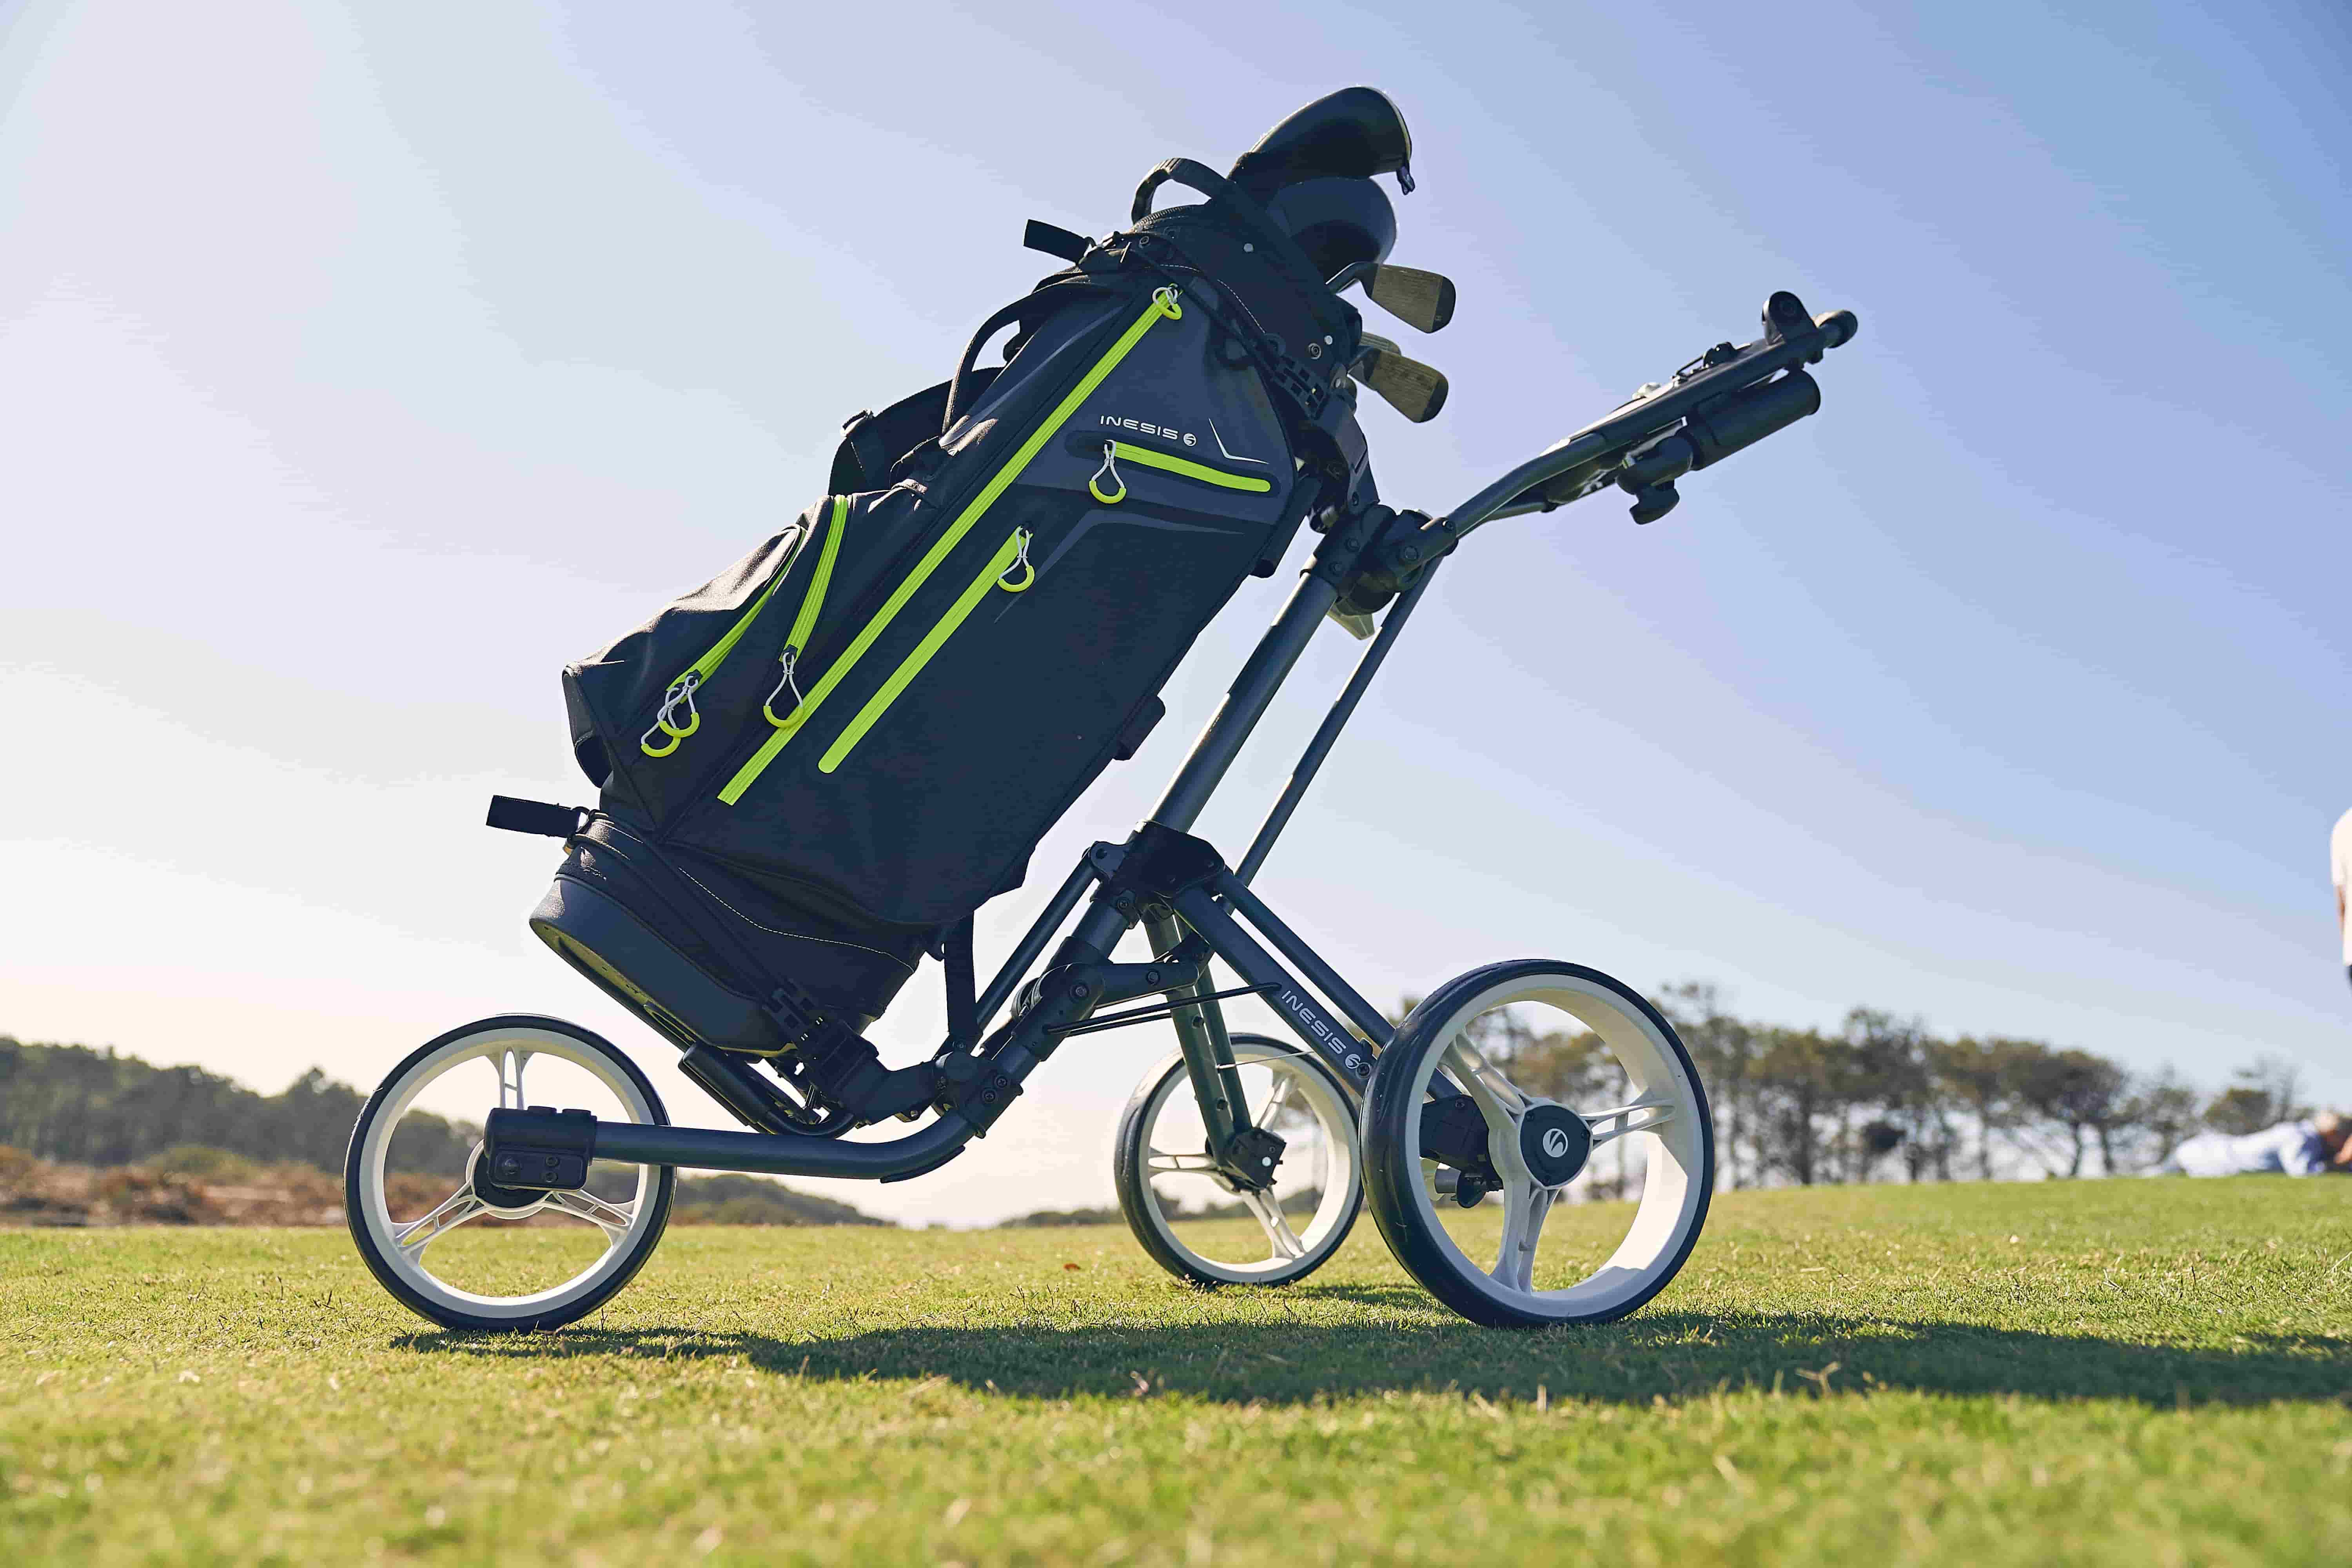 How to Choose the Best Golf Bag?